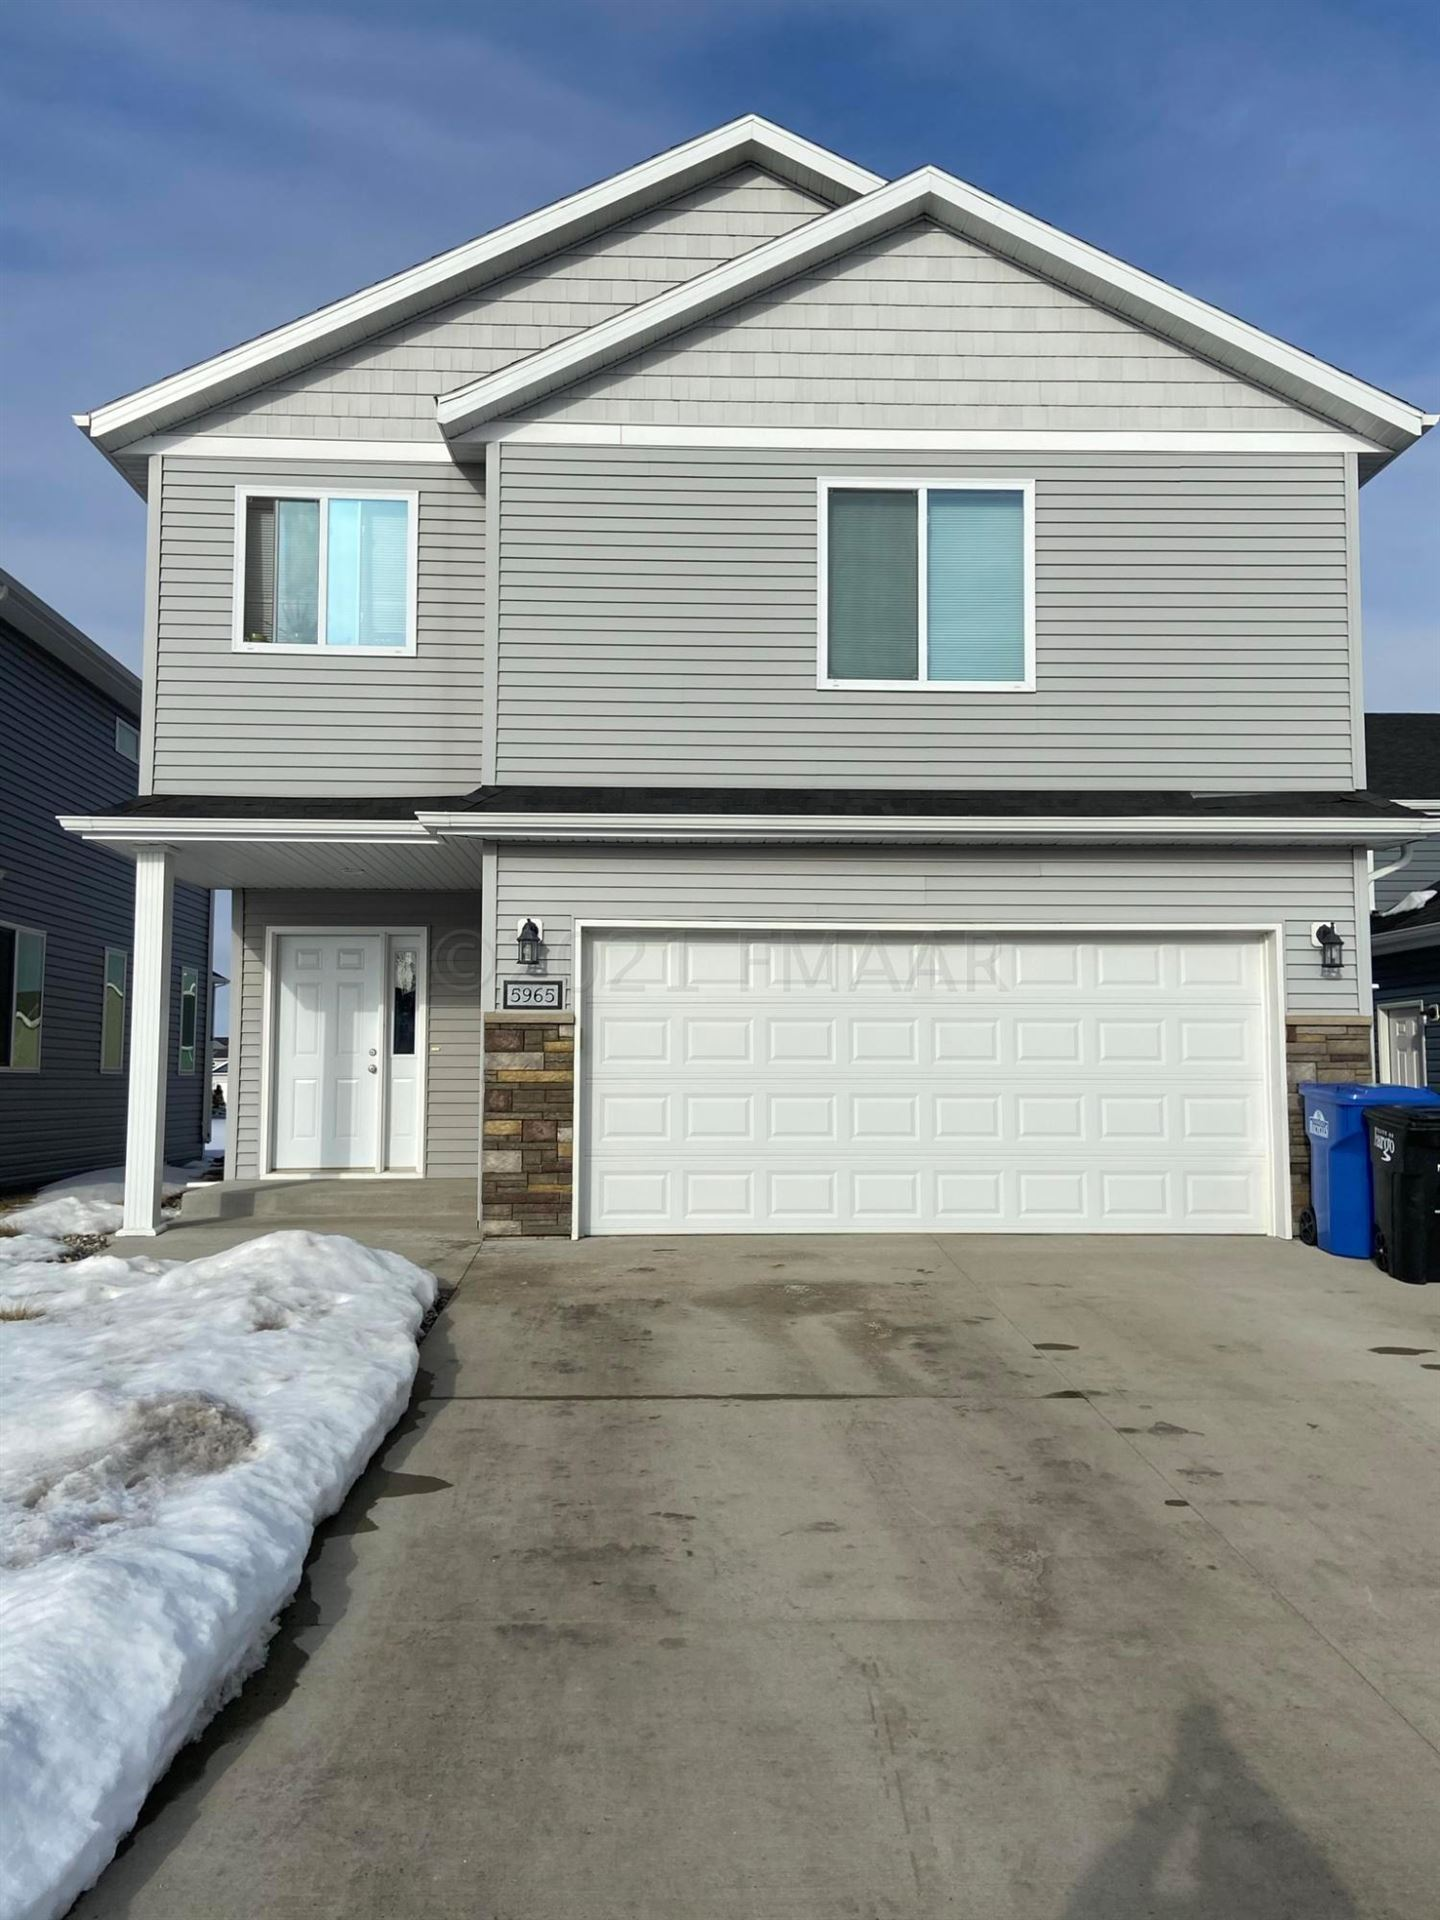 5965 61 Avenue S, Fargo, ND 58104 - #: 21-184